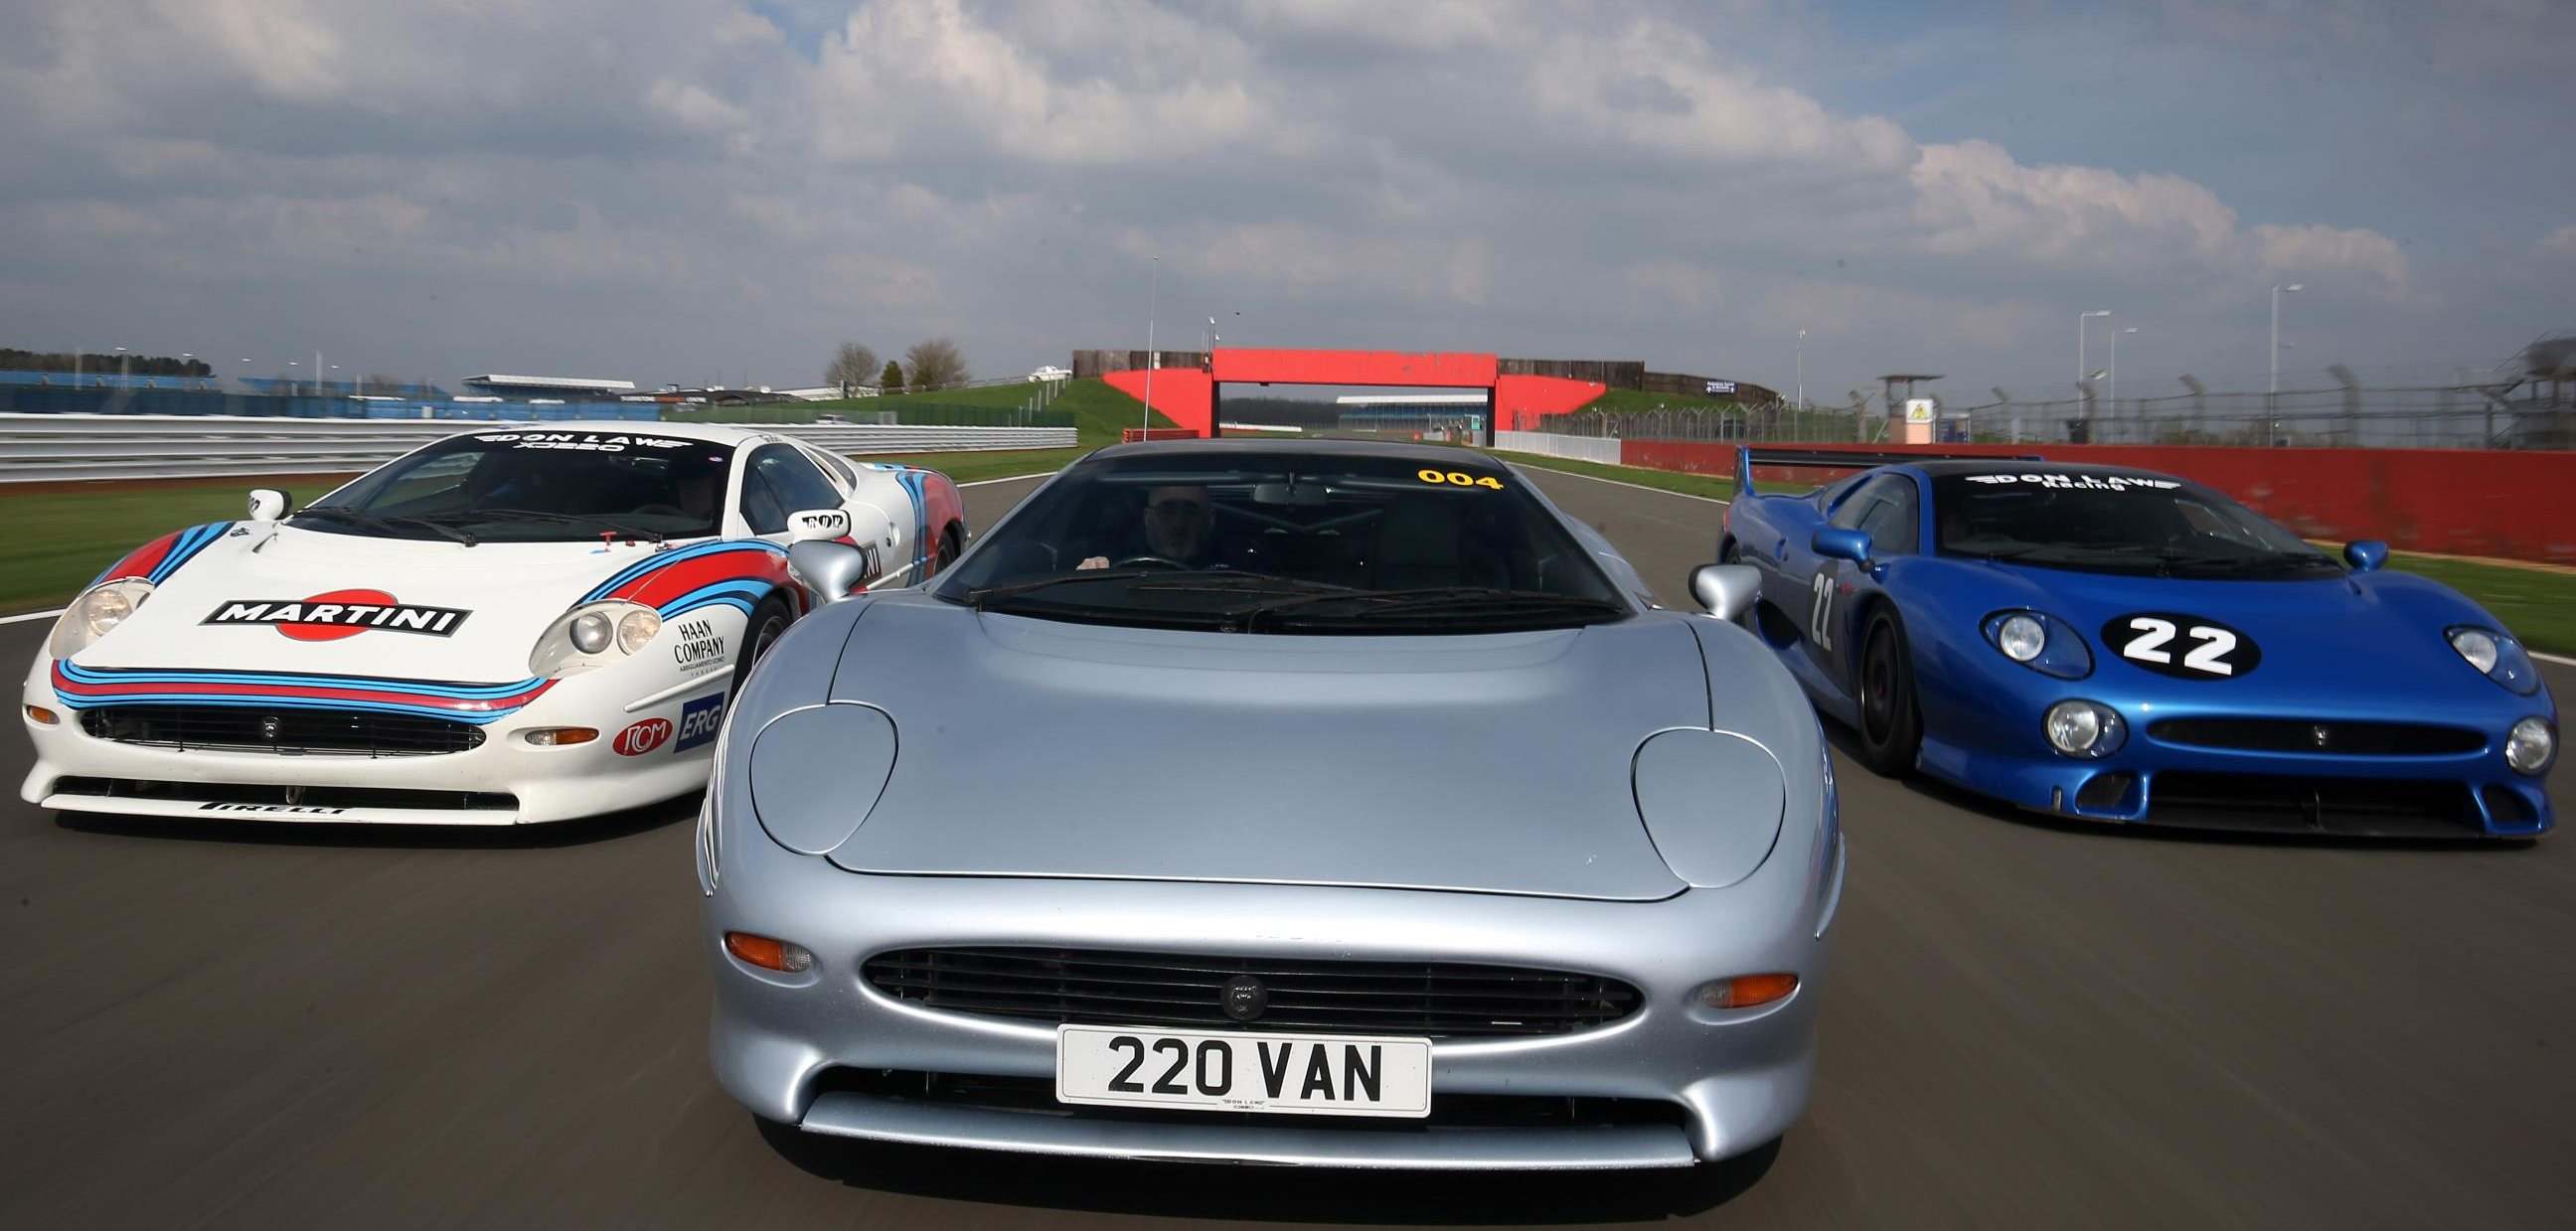 Silverstone Sets World Record Parade For Jaguar Supercar